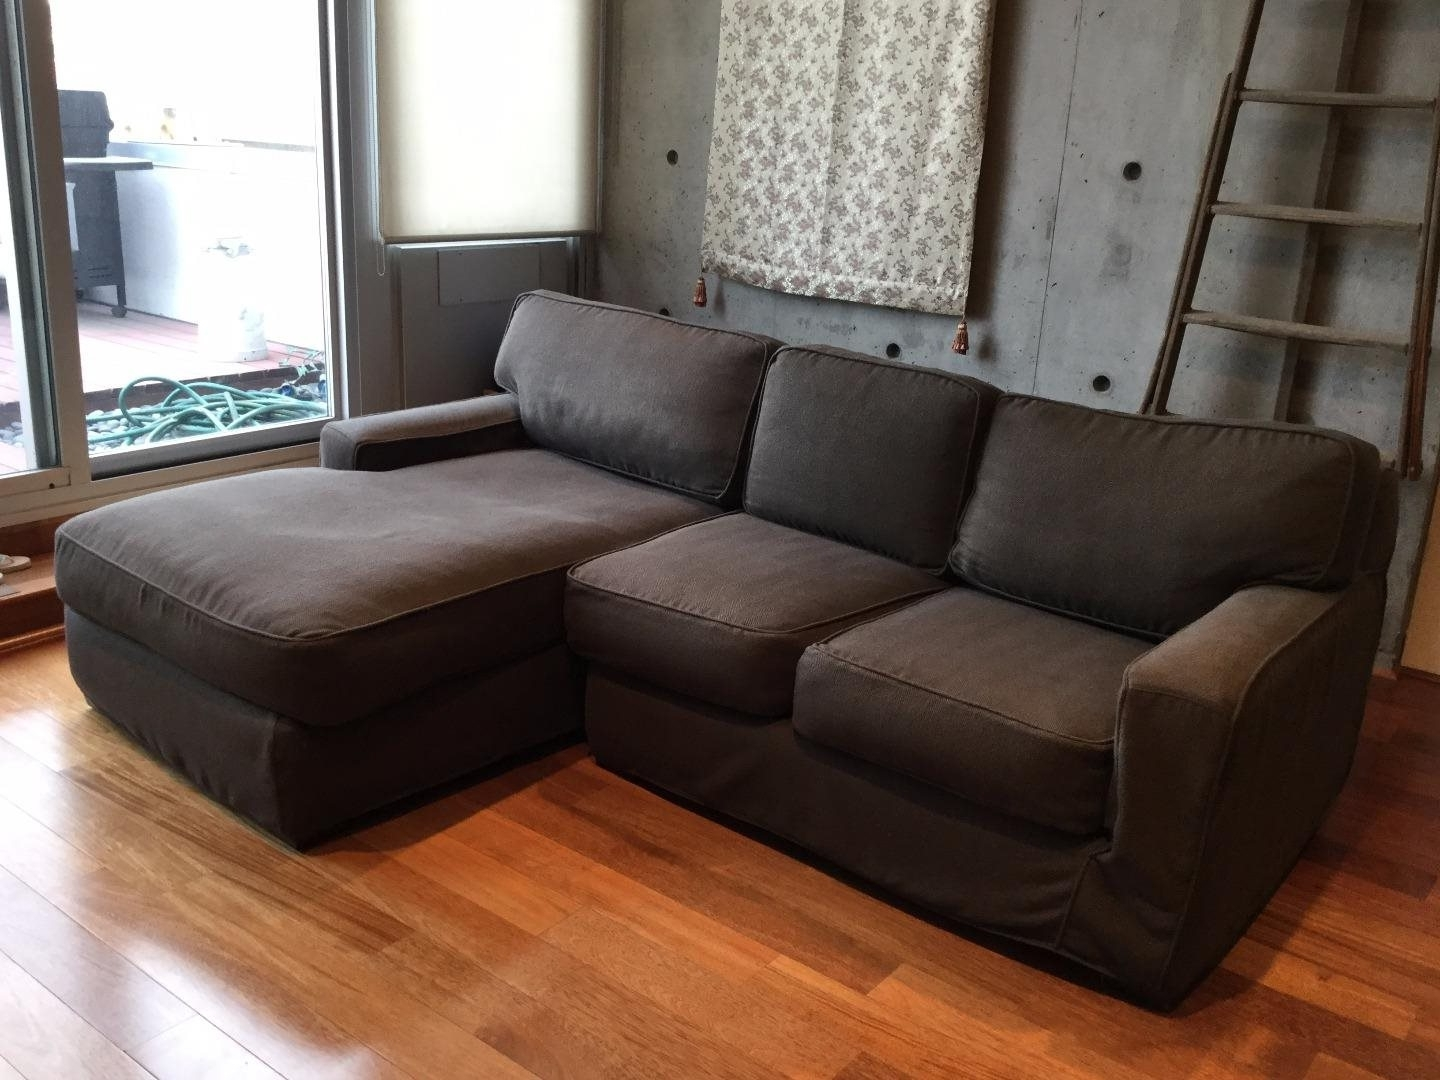 Trendy Quatrine Sectional Sofas With Regard To Quatrine Upholstered Sectional Sofa: For Sale In San Francisco, Ca (View 16 of 20)